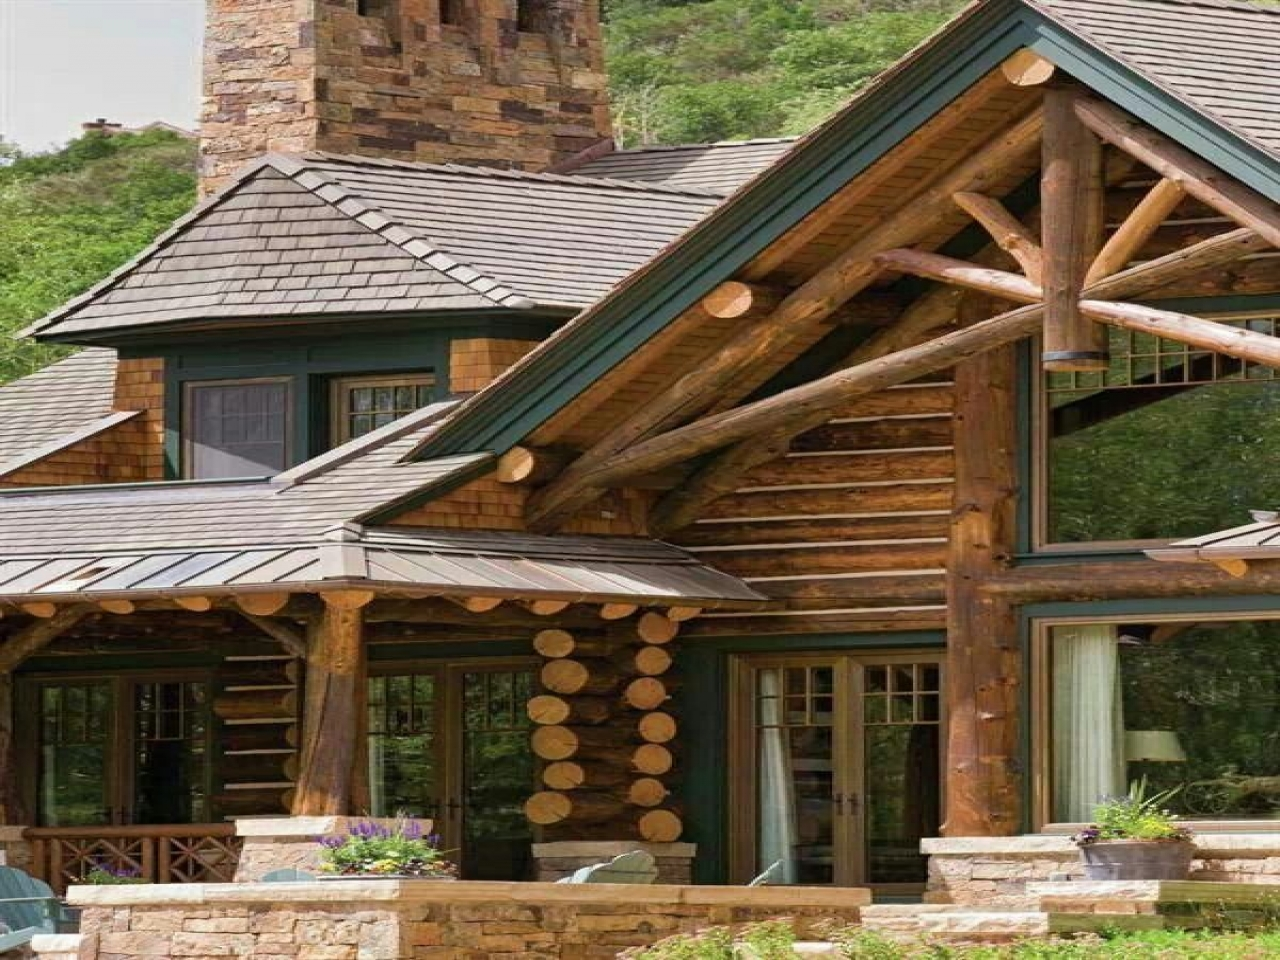 Cool log cabin homes ranch style log homes cool log homes for Log cabin ranch style homes